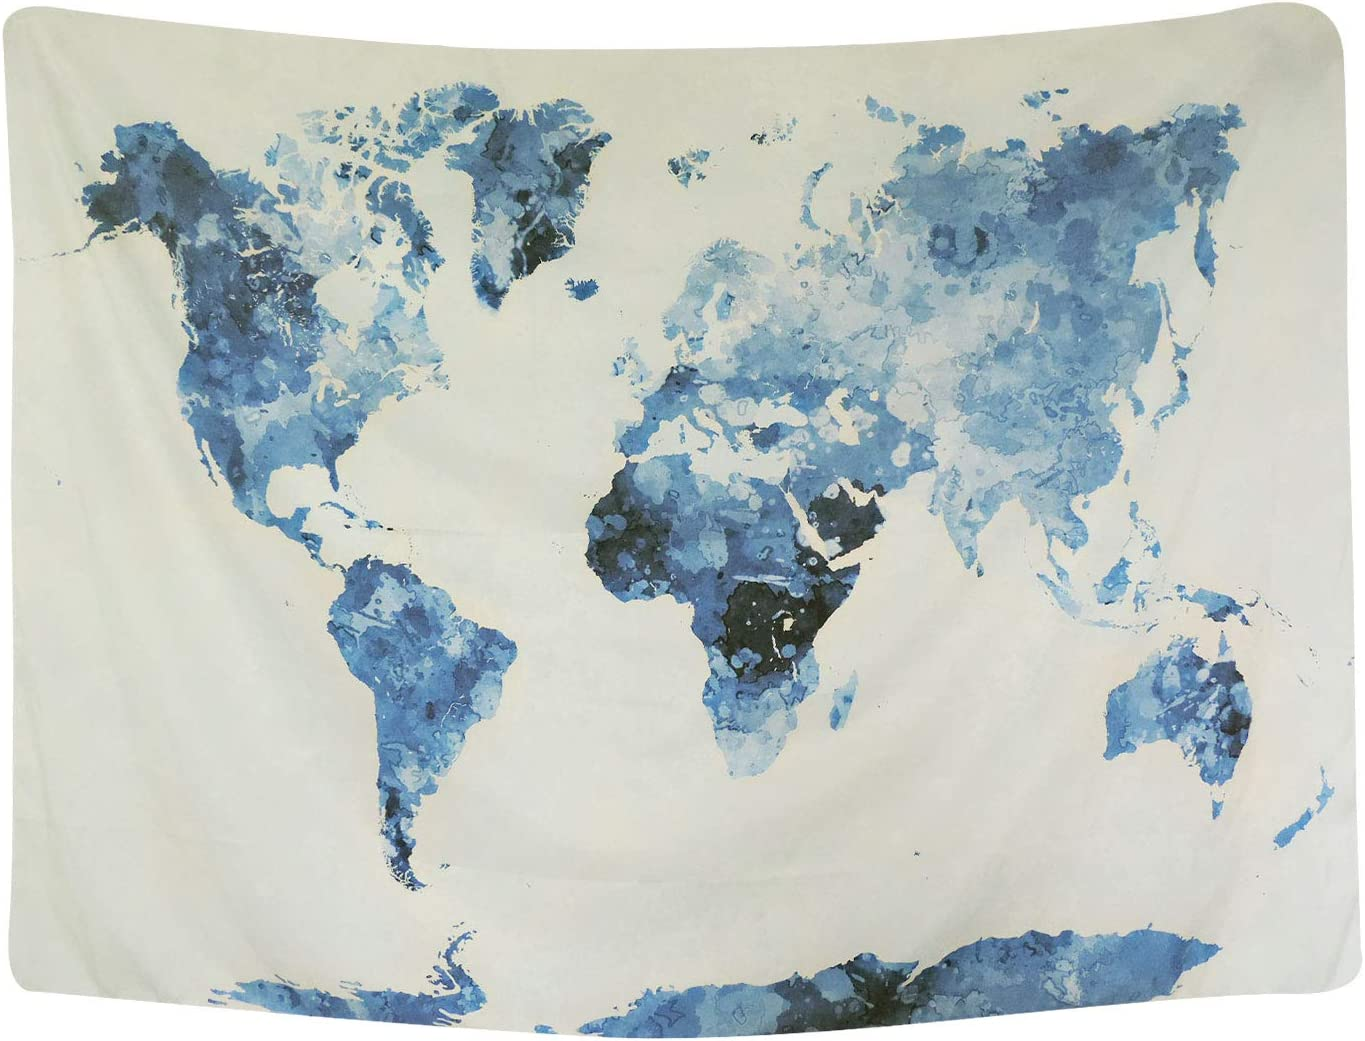 tapestry map of the world Amazon Com Bleum Cade Blue Watercolor World Map Tapestry Abstract